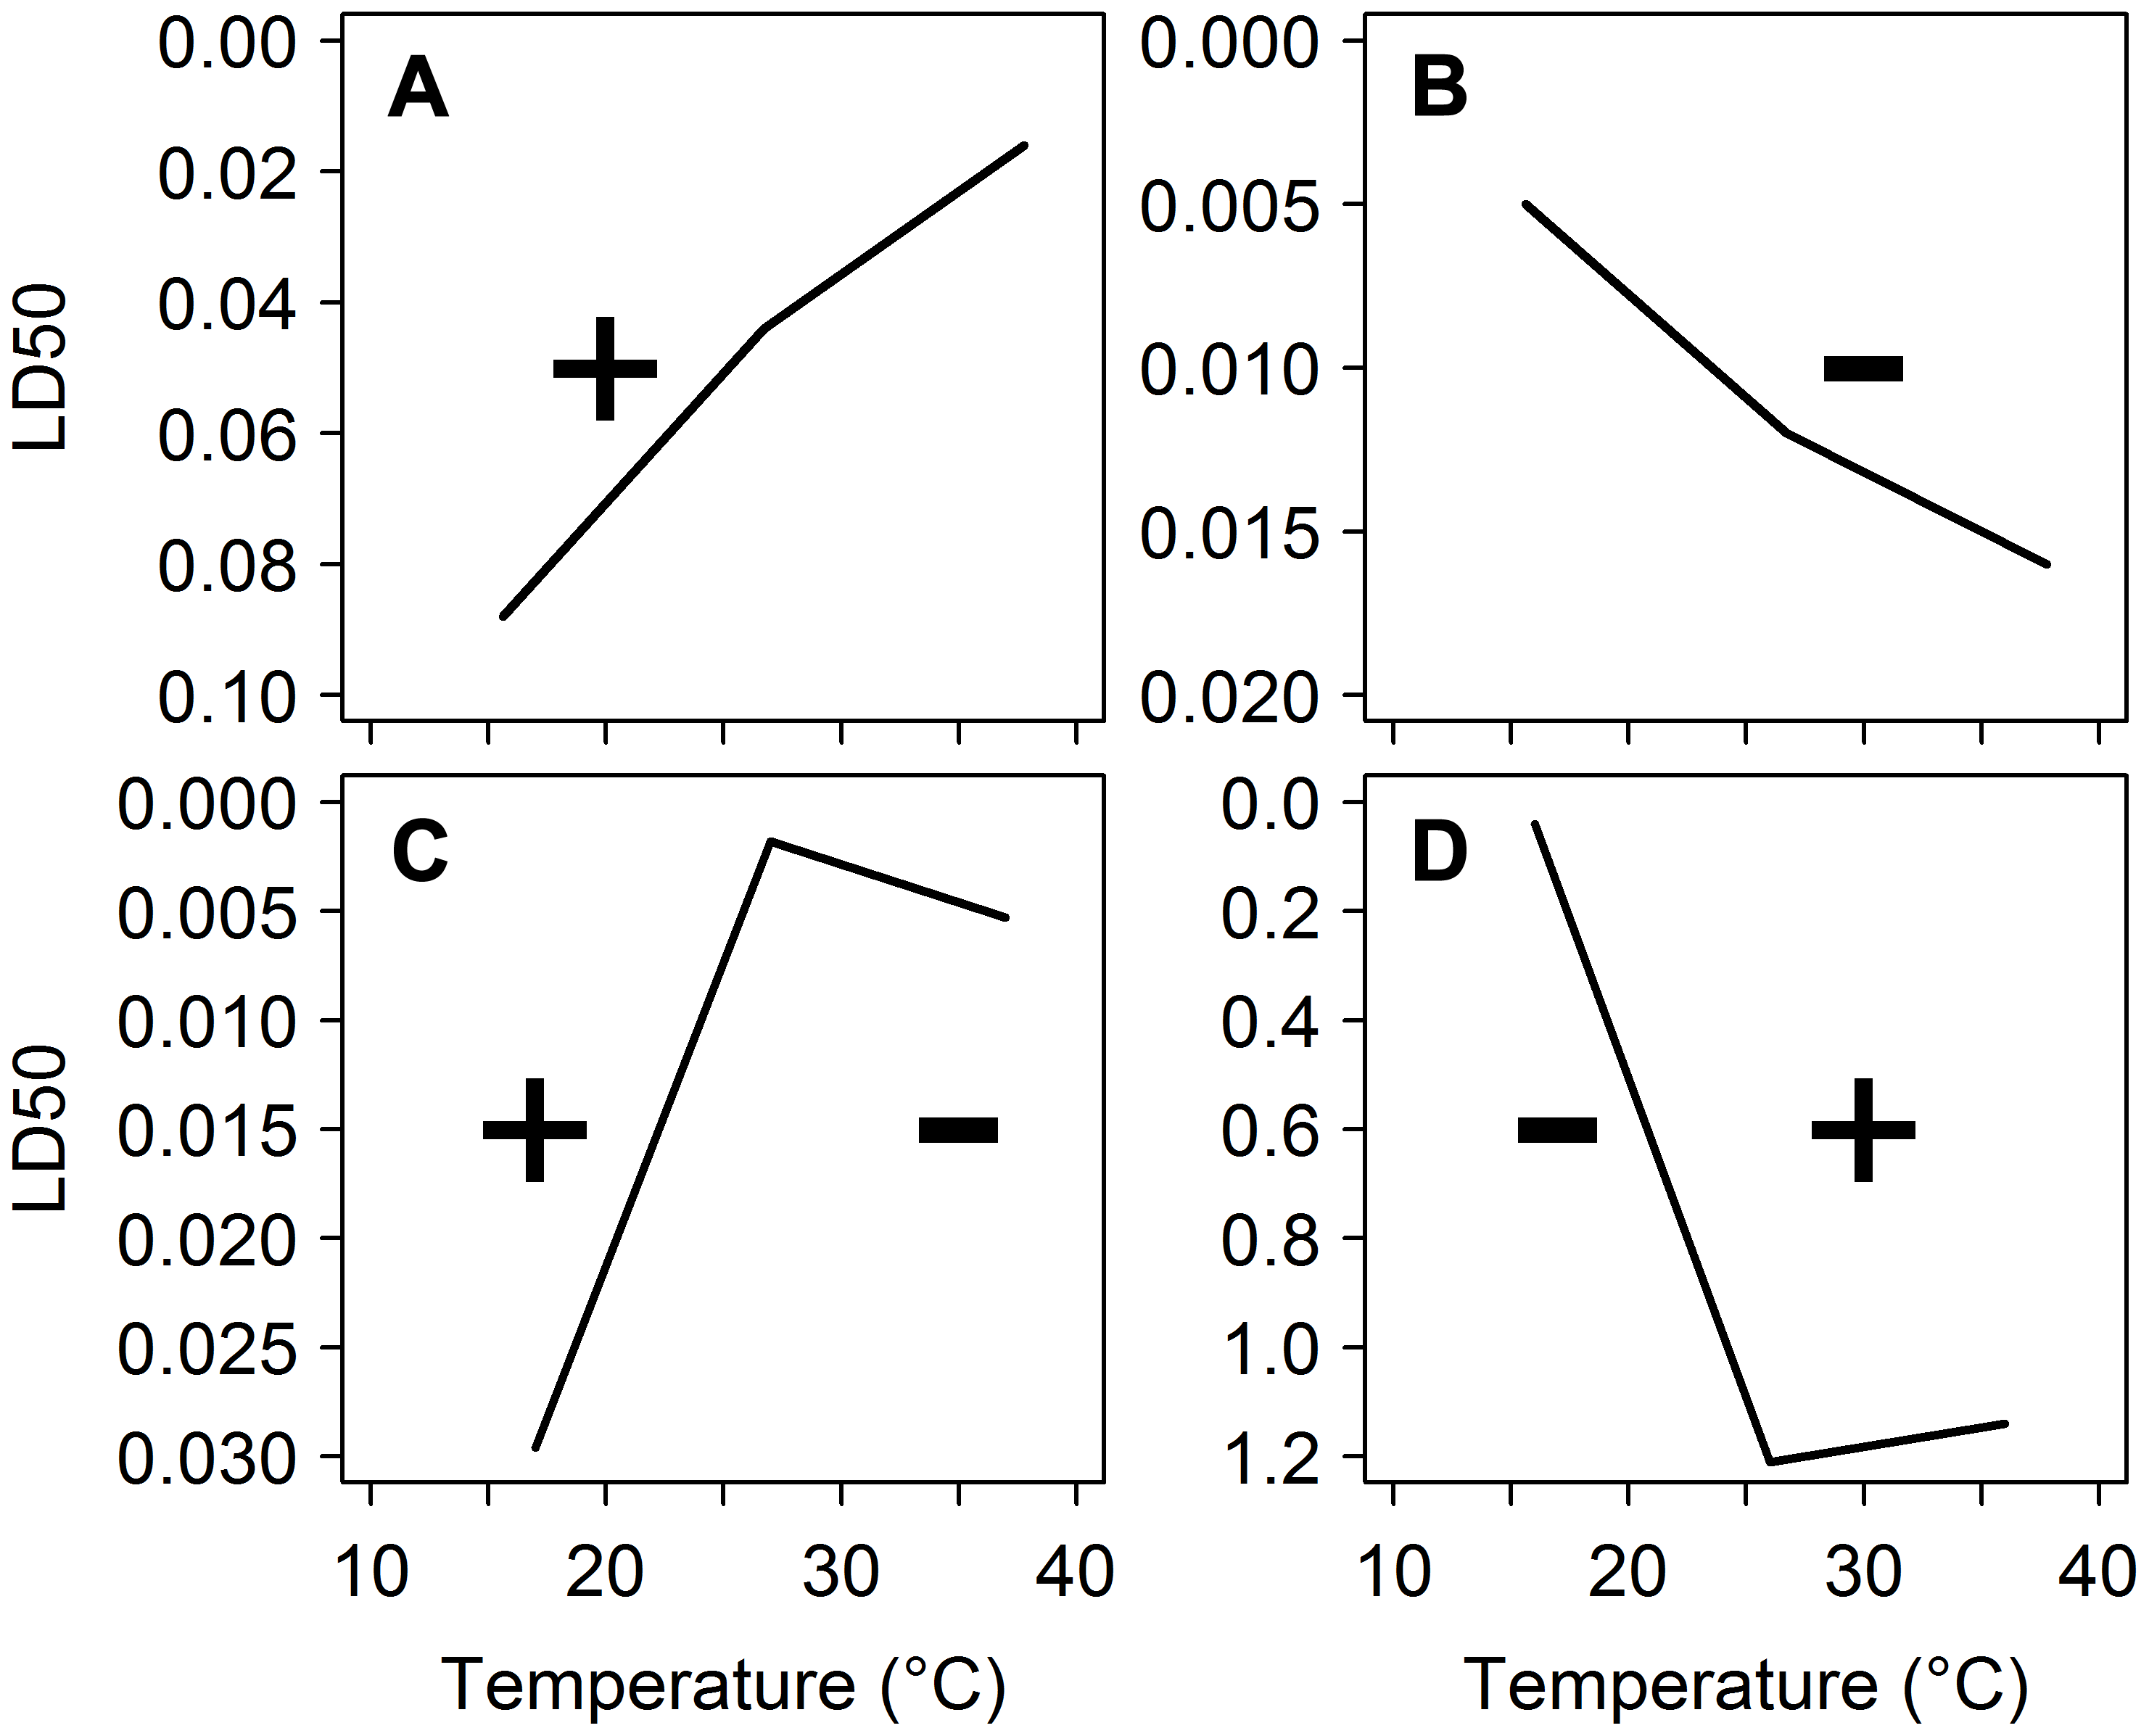 Temperature coefficients of deltamethrin against different insect species.